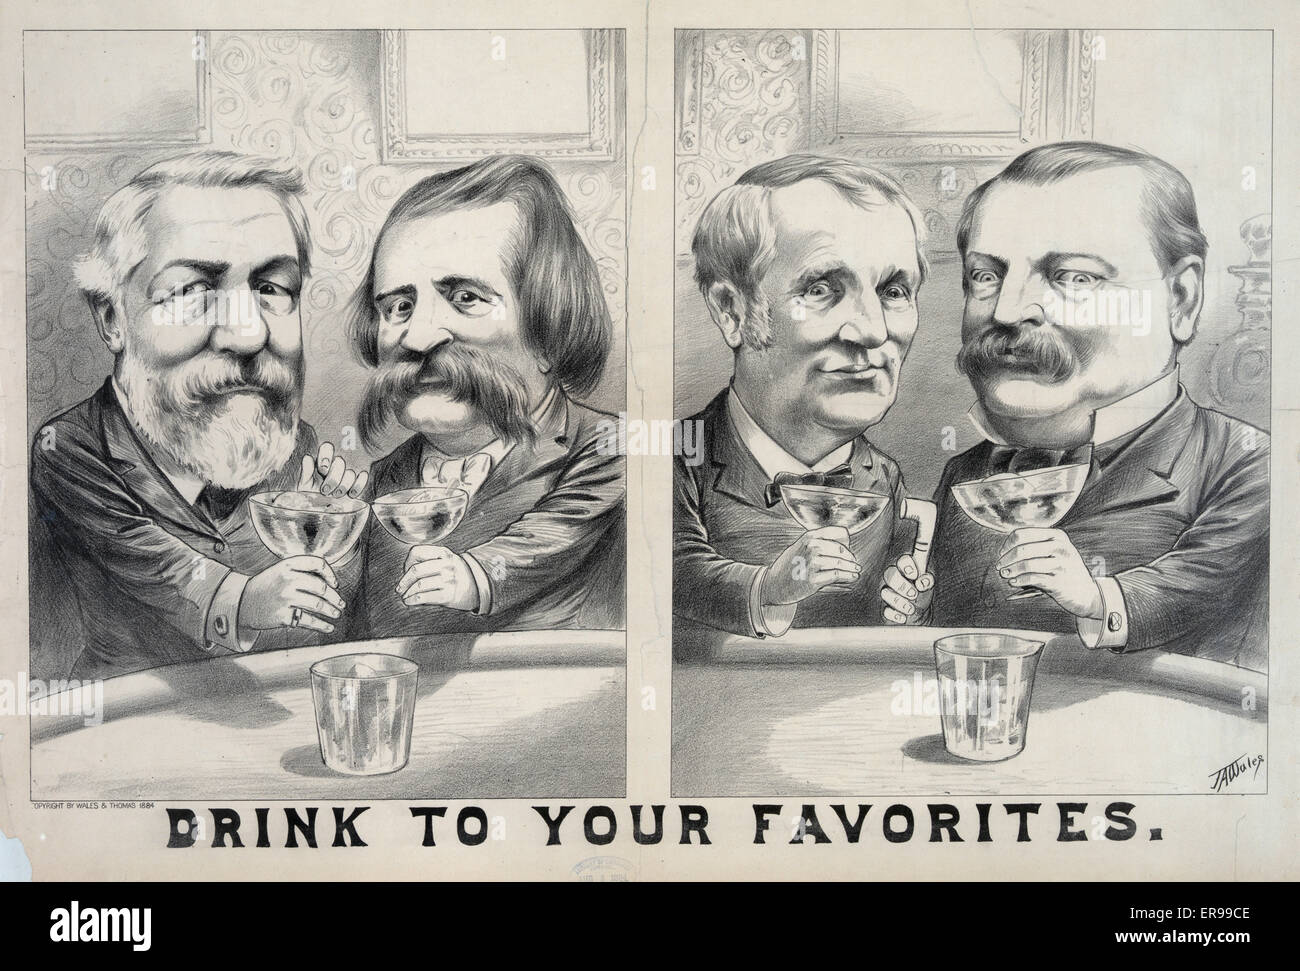 Drink to your favorites. Composite of two caricatures of James G. Blaine and John A. Logan toasting each other, - Stock Image